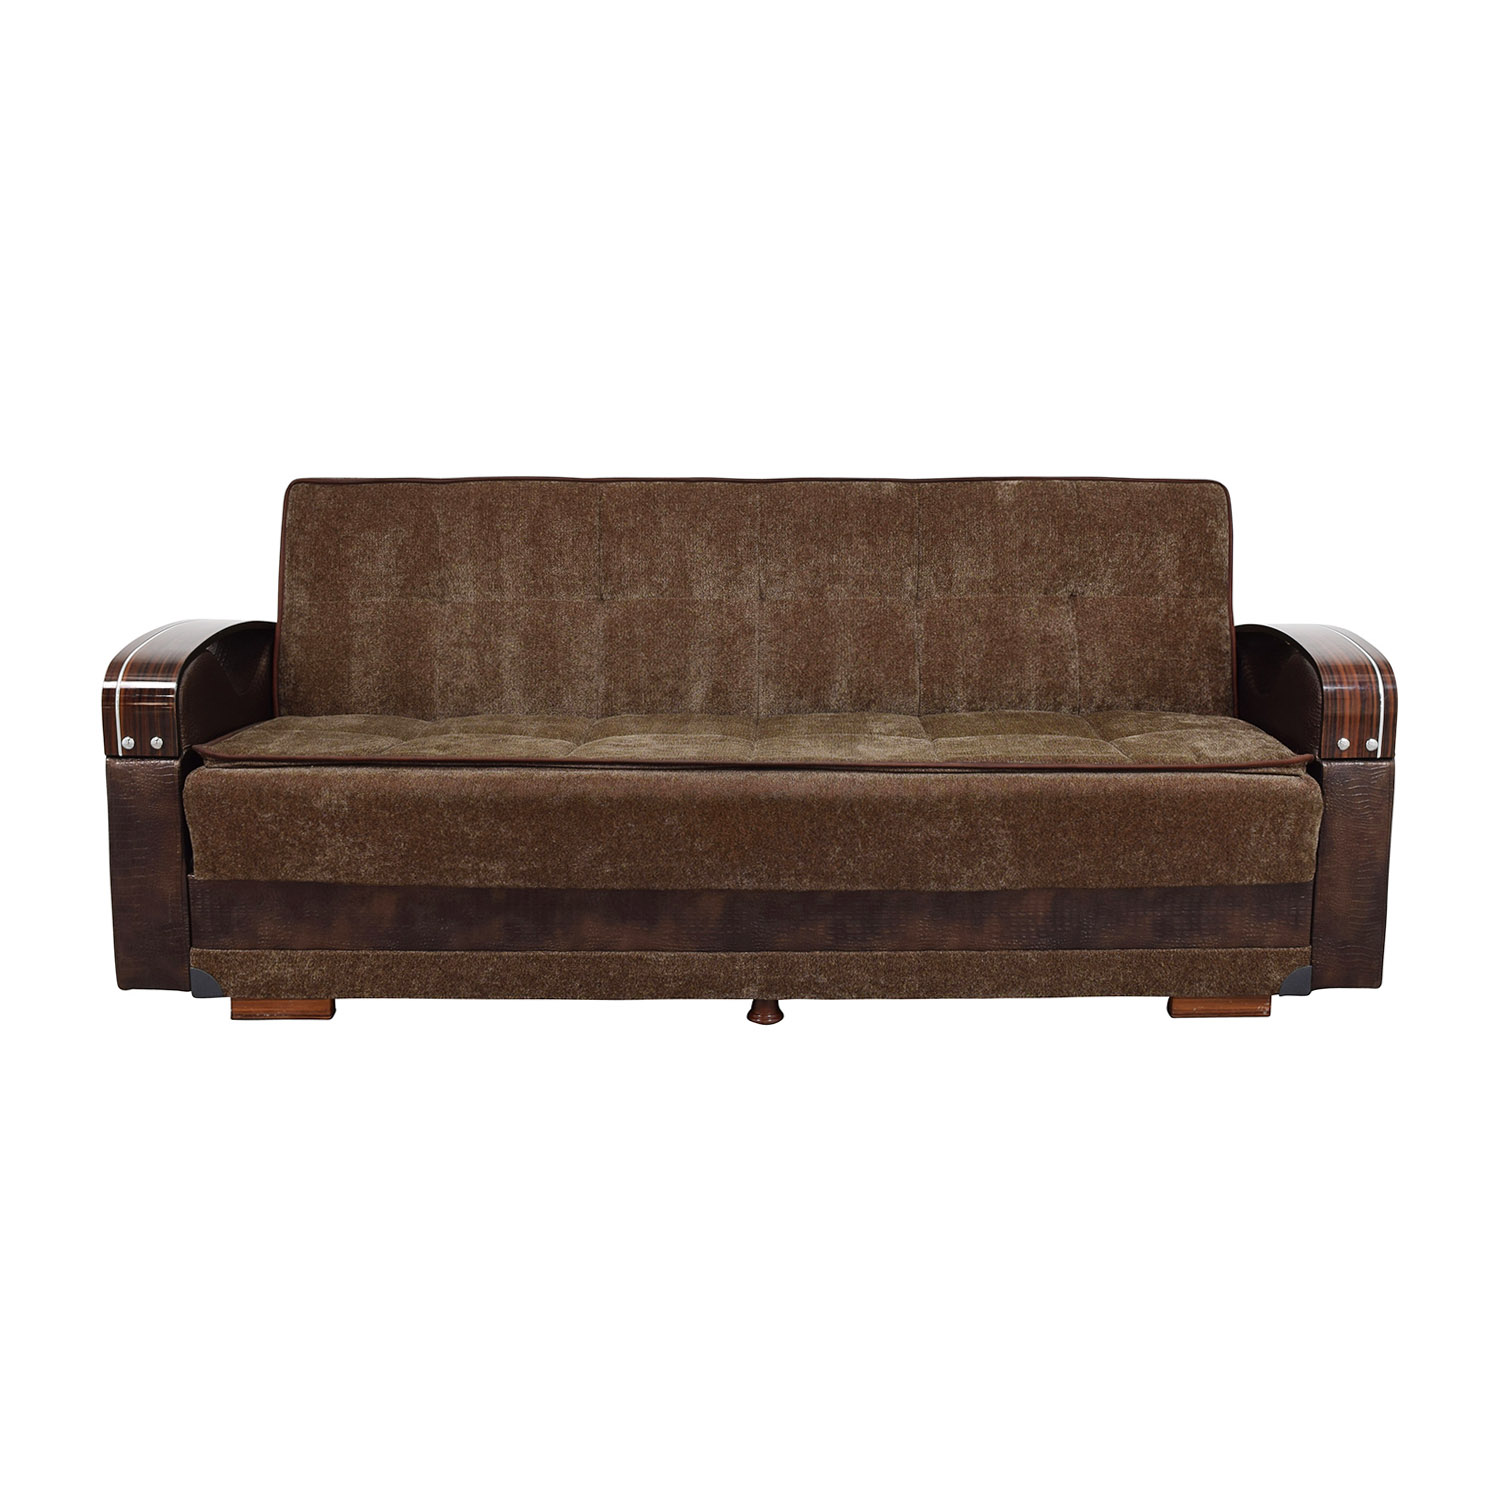 Sofa Mart Sale 85 Off Sleep Mart Sleep Mart Natural Collection Prestige Brown Futon Sofa Sofas